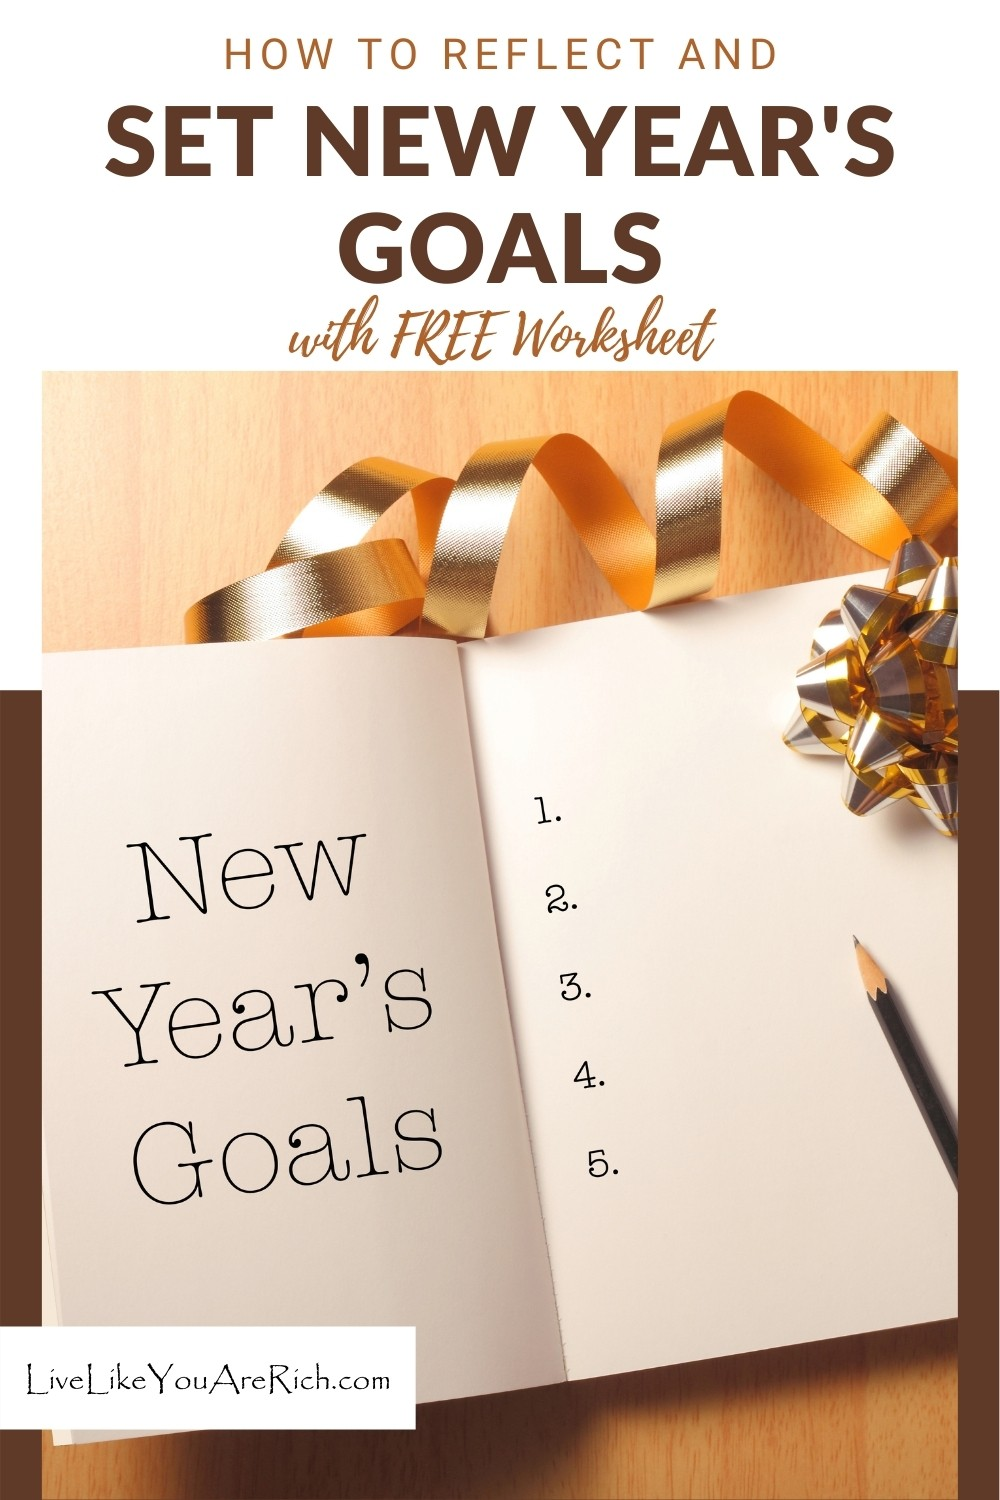 2020 was a tough year for many. Let's hope for better days in 2021! Despite it being a rough year, I still want to stick to the tradition of filling out my New Years Worksheet which I also made available to you as a free printable.